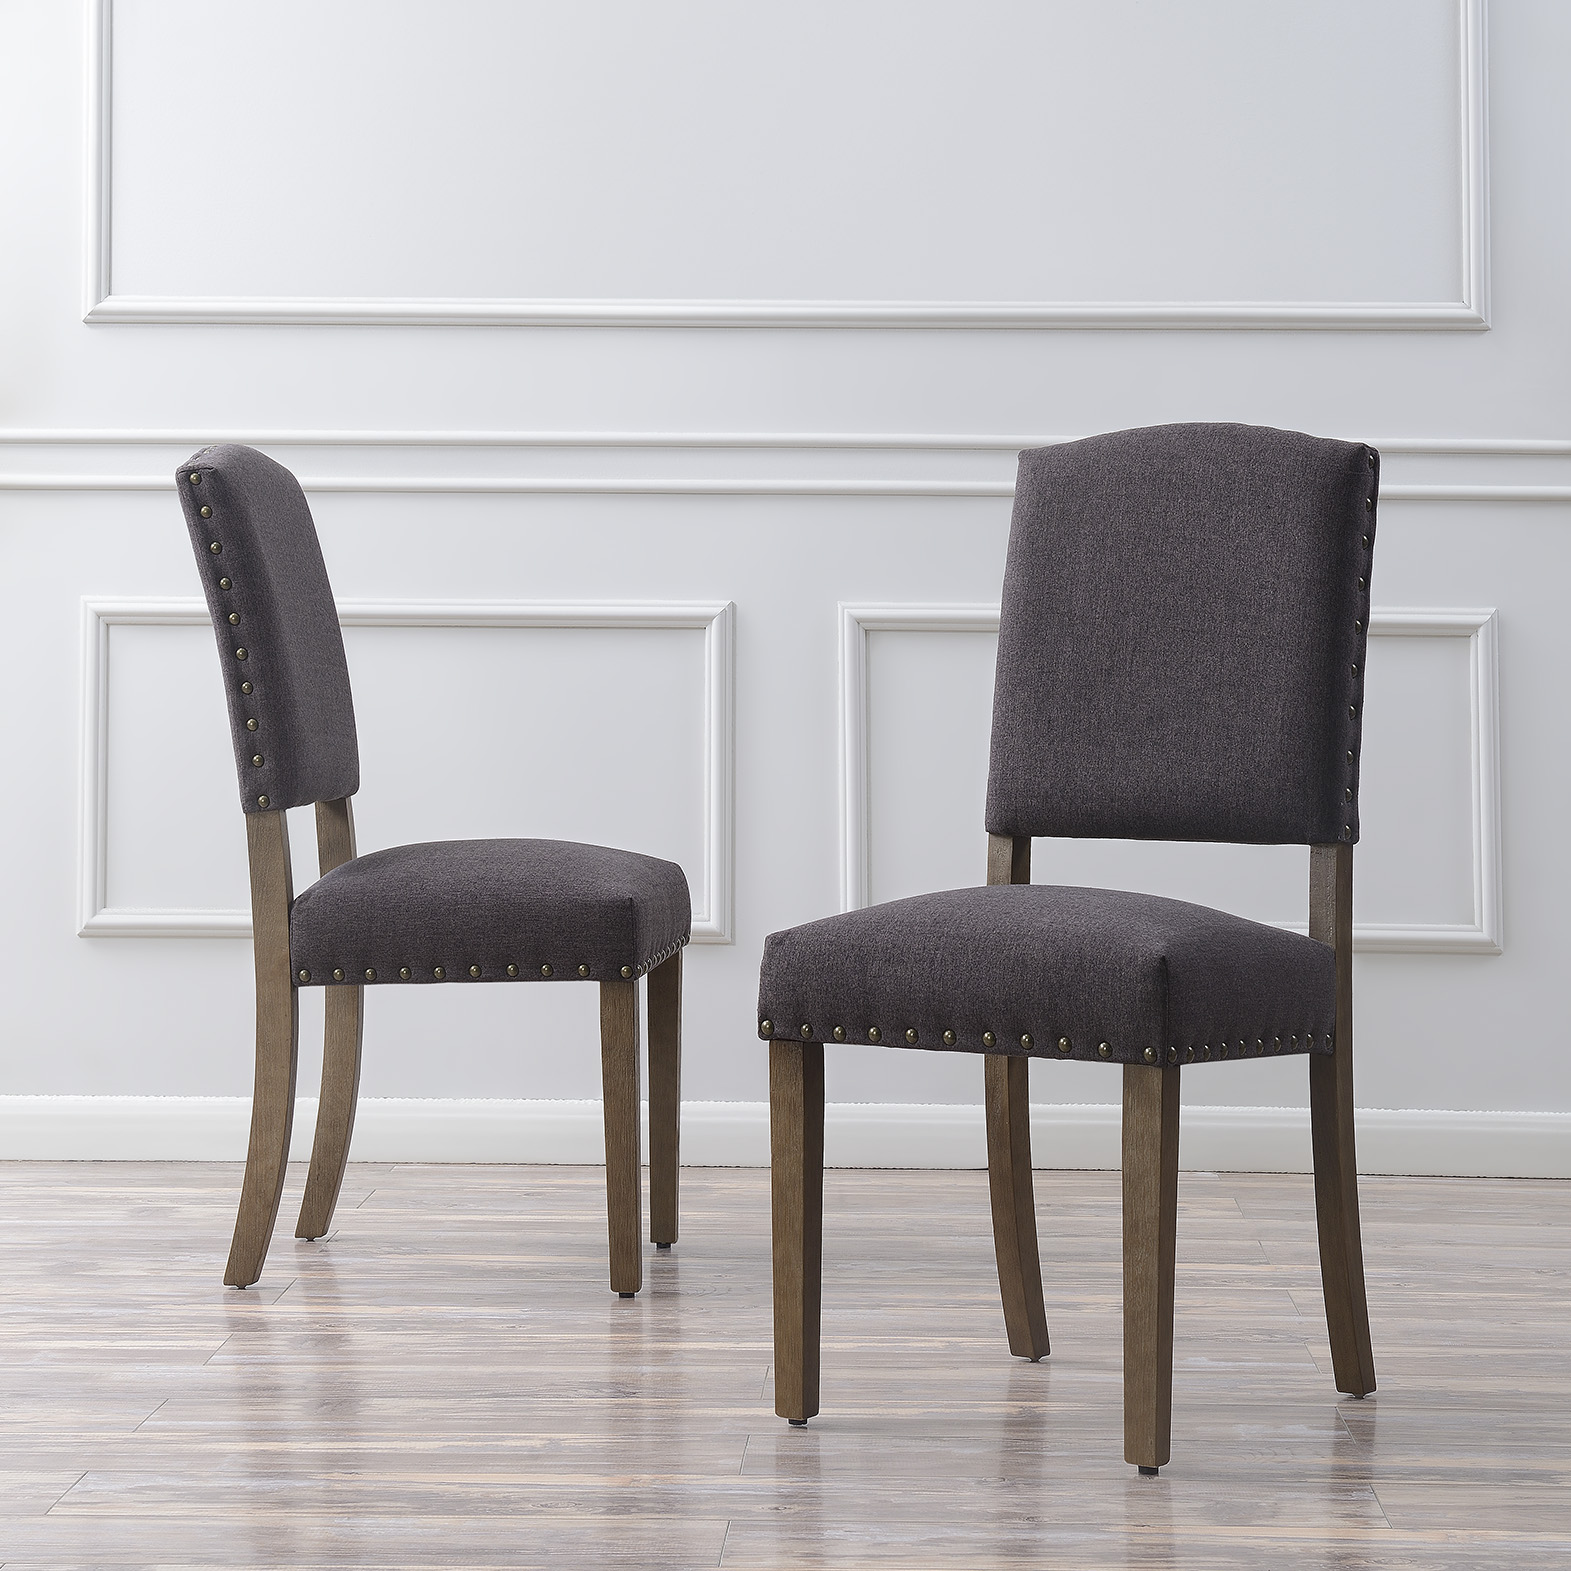 thumbnail 7 - Vintage Dining Chair Set of (2) Contemporary Extra Padded Cushion Seat